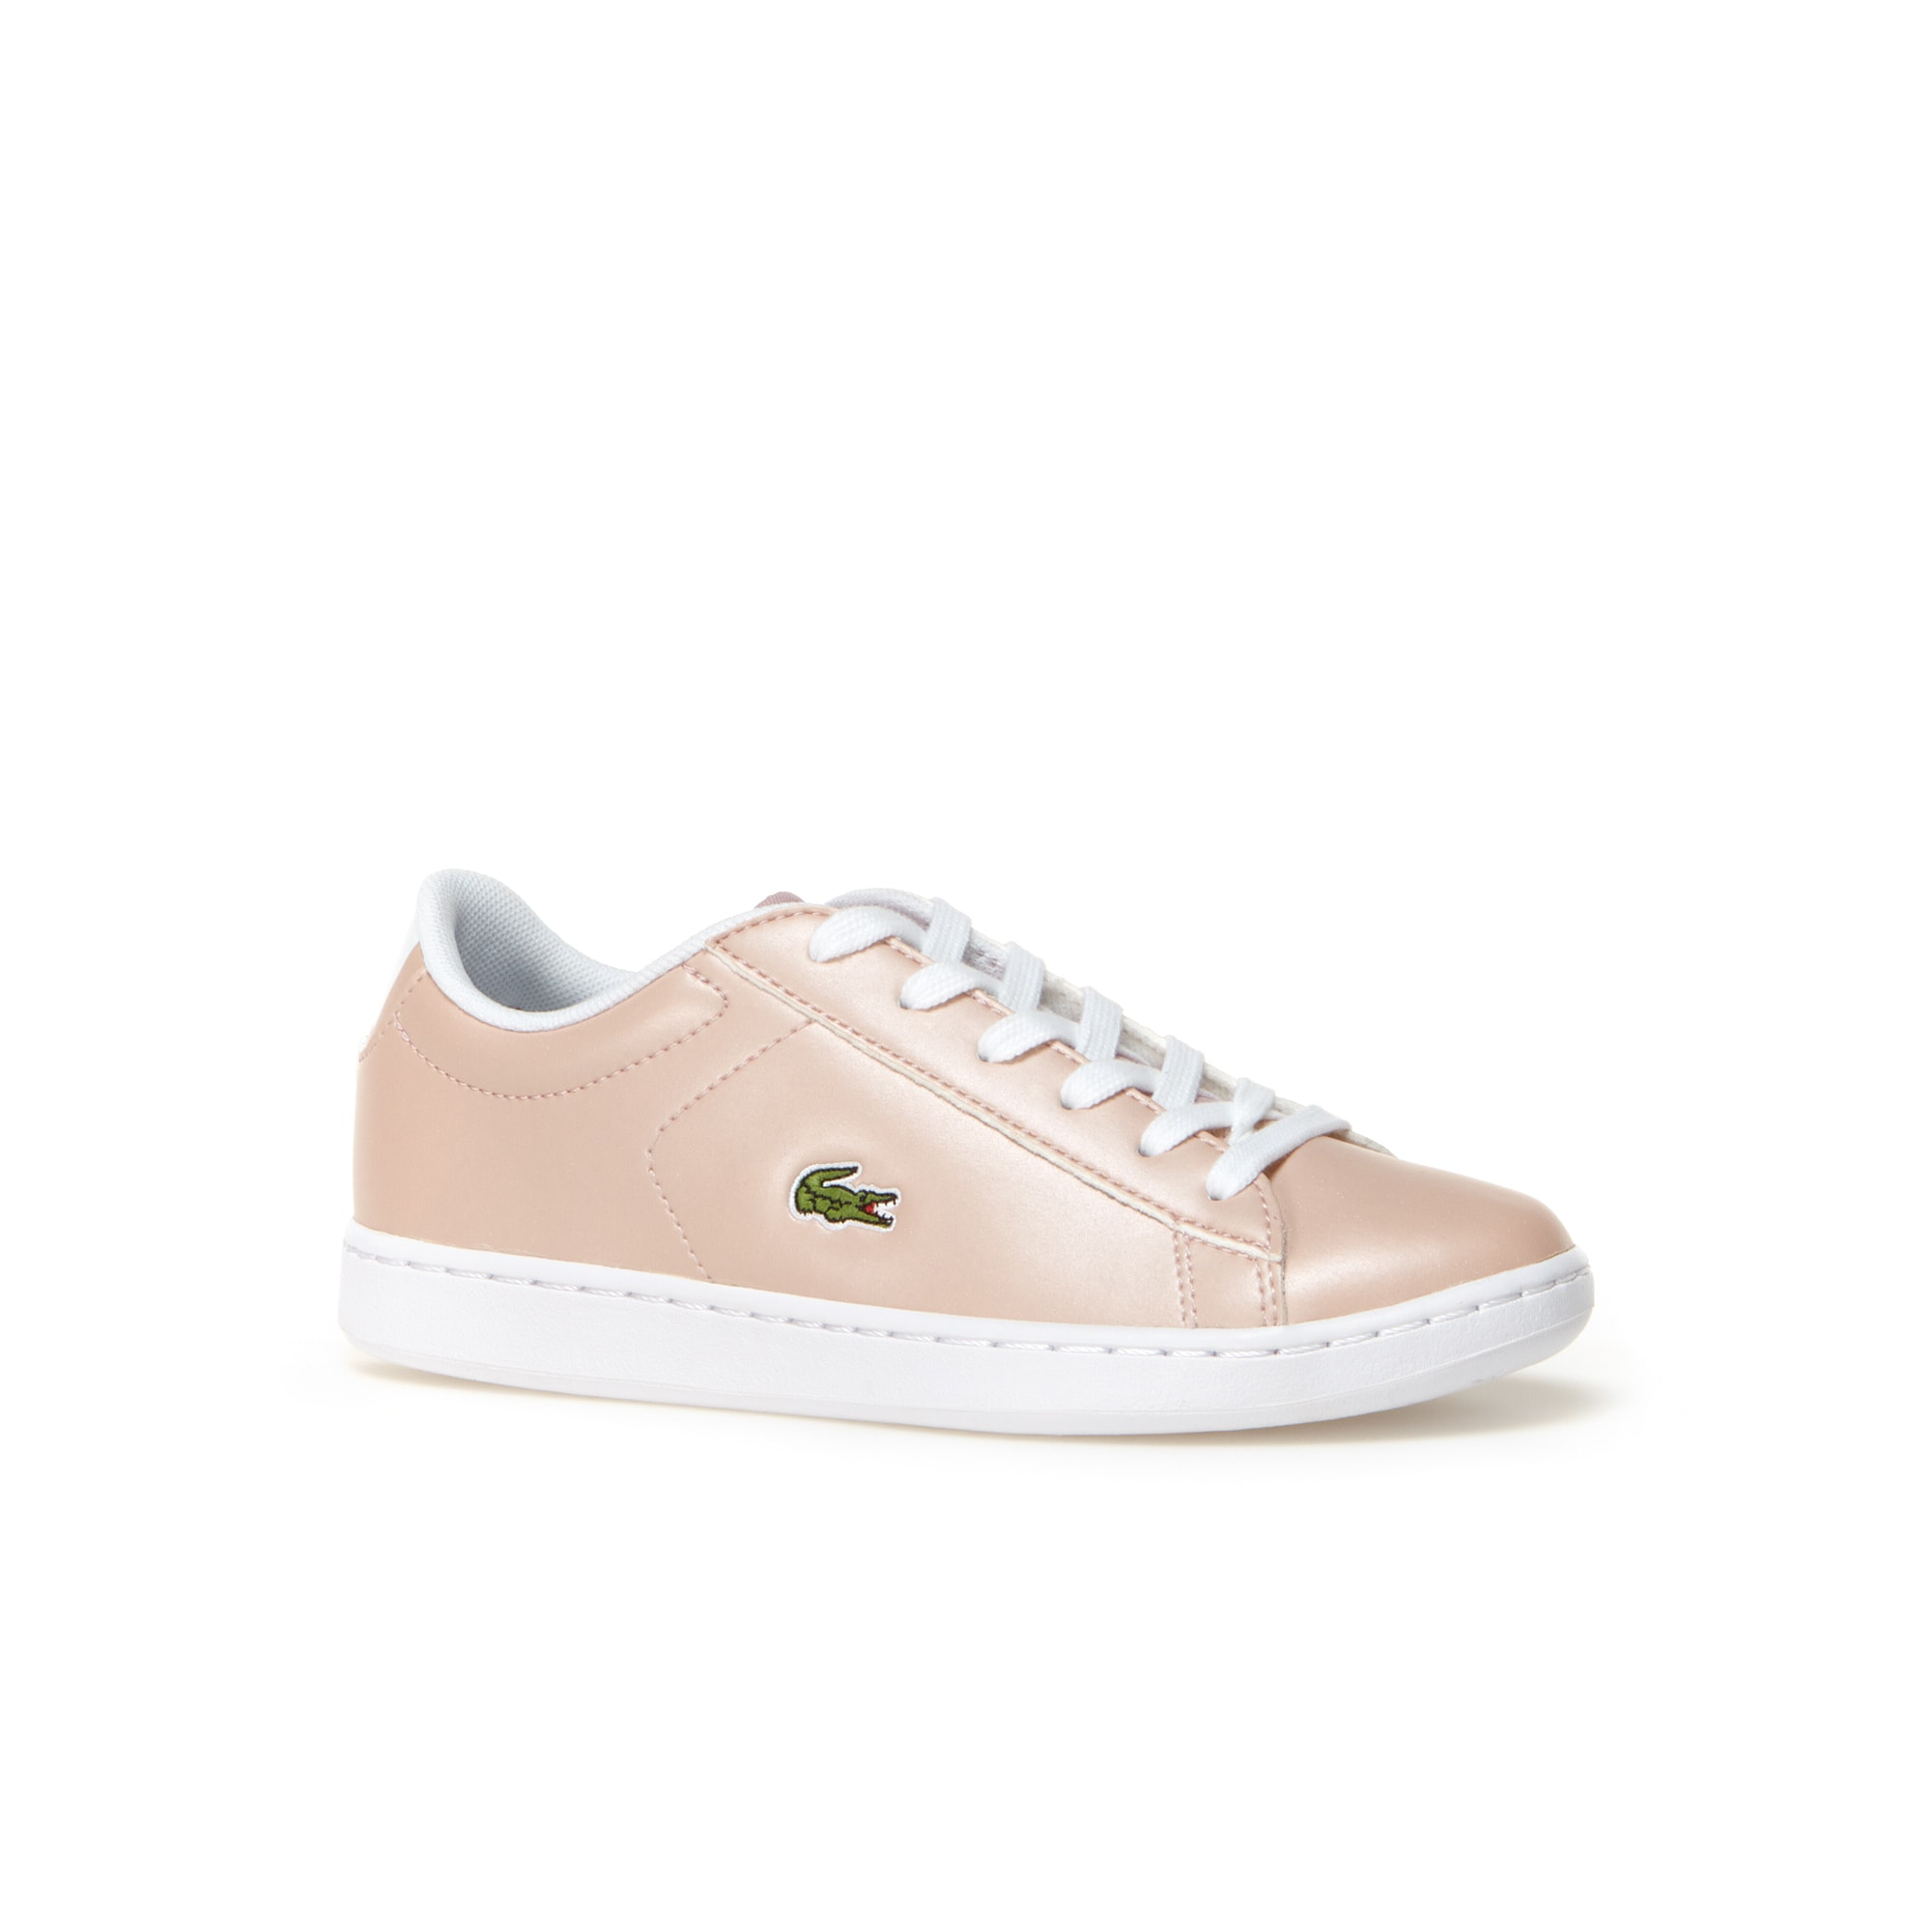 Kids' Carnaby Evo Sneakers